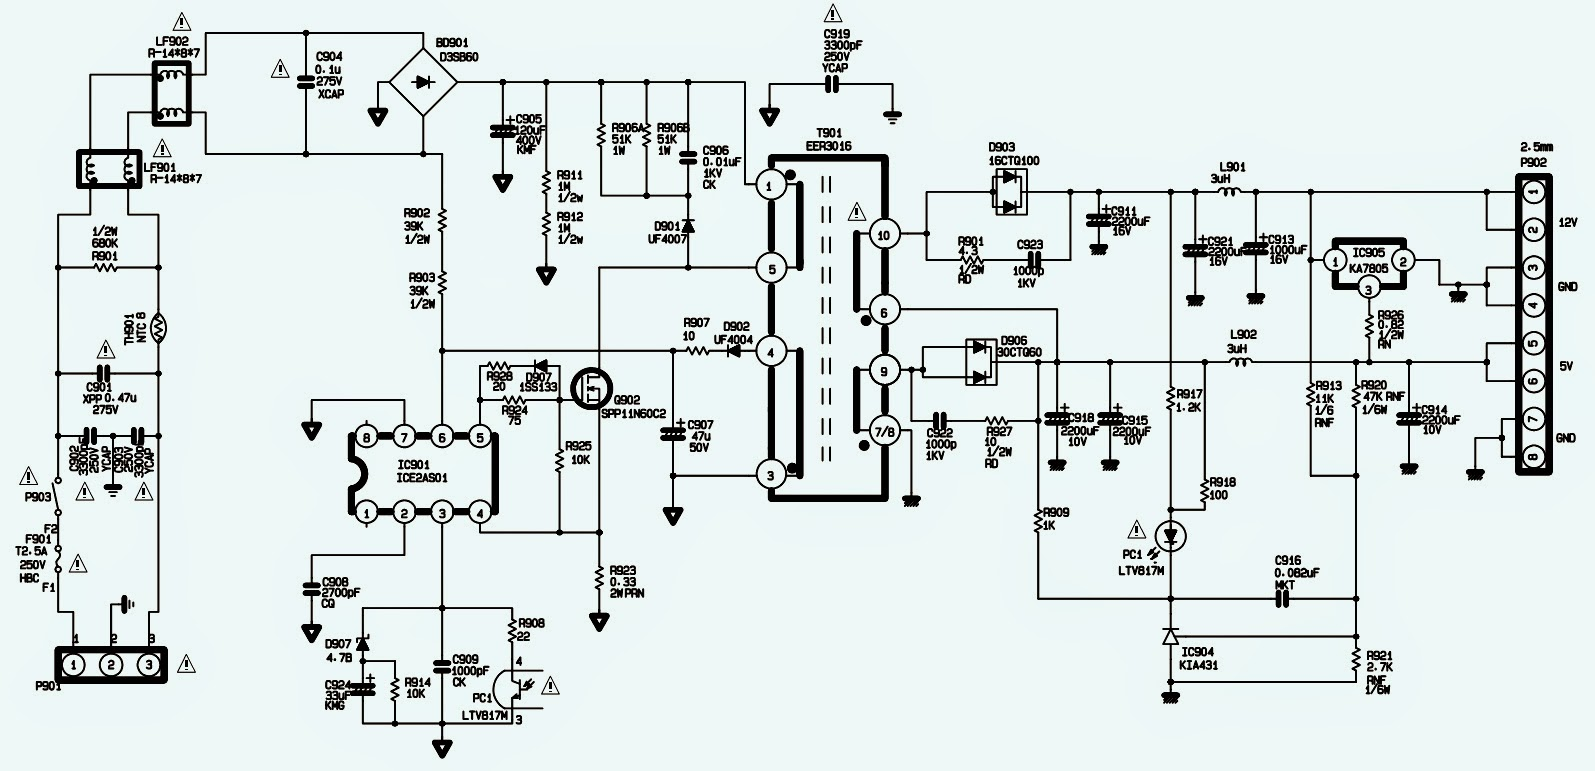 1.bmp wiring schematic diagram lg flatron l1810b monitor smps schematic lg wiring diagrams at mifinder.co